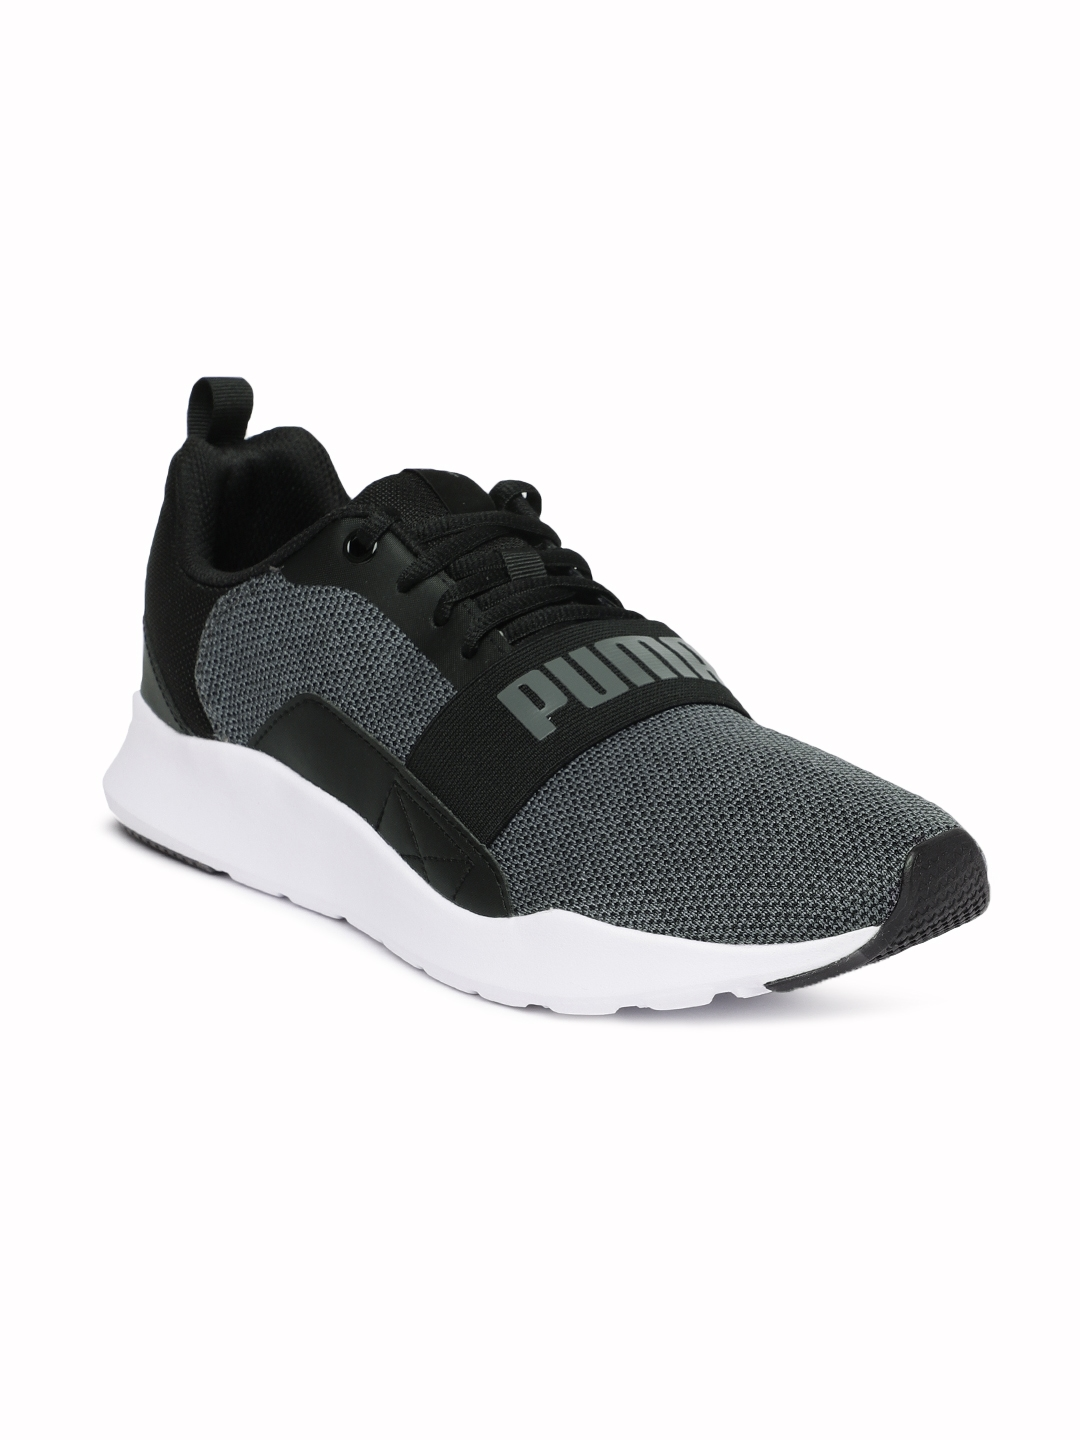 Buy Puma Men Black Wired Knit Sneakers - Casual Shoes for Men ... fcc3f6222